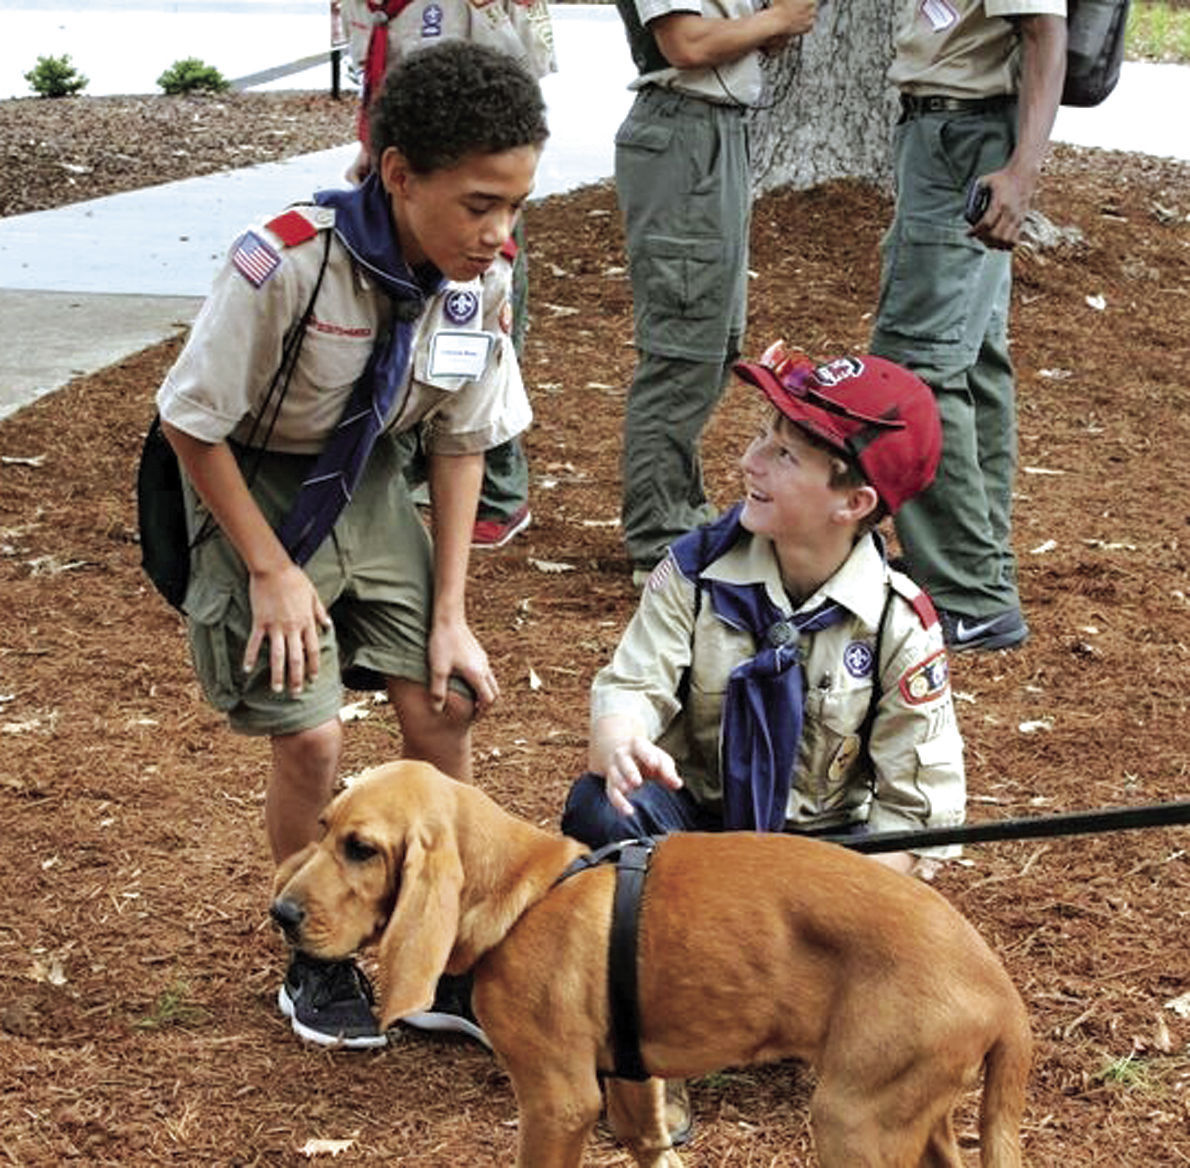 Boy Scouts and bloodhounds